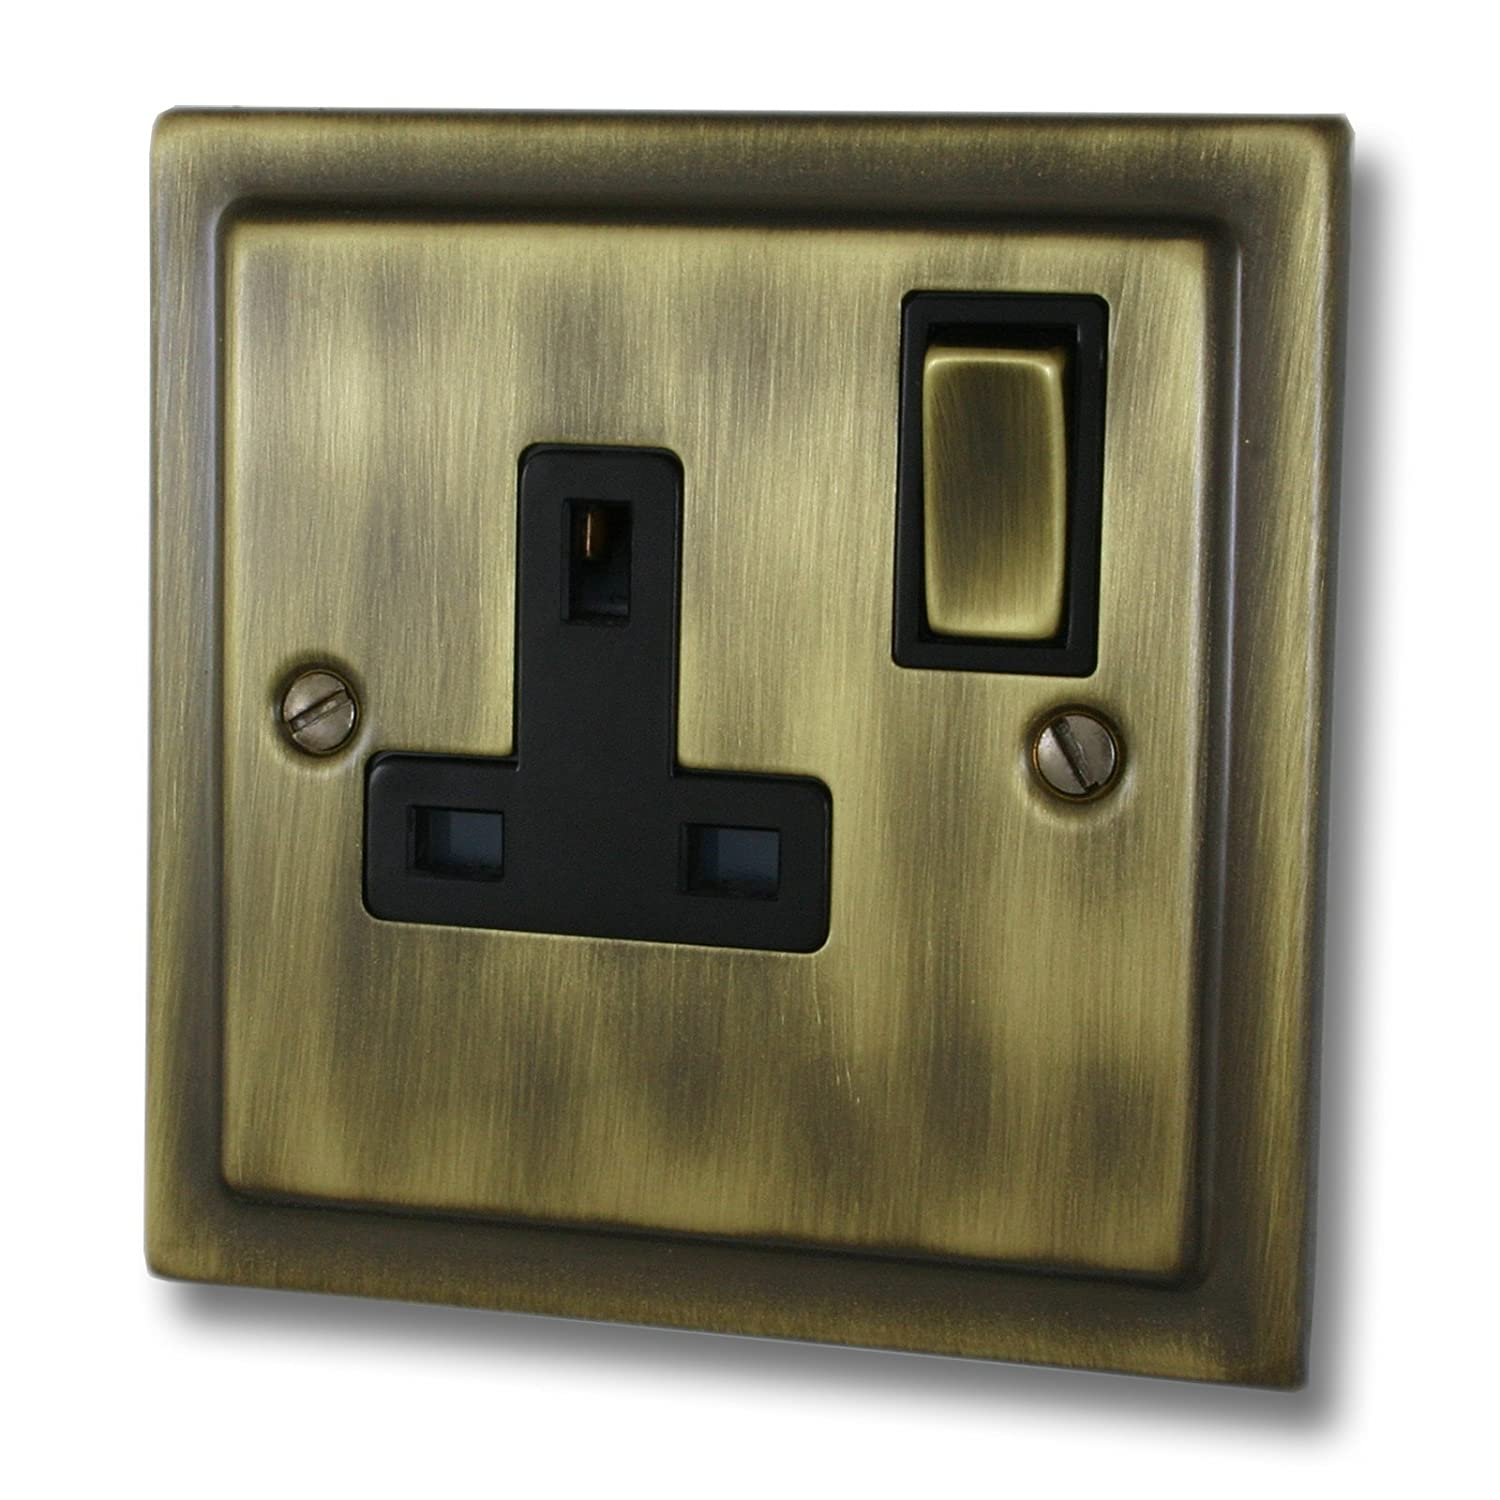 G&H Brassware TAB309 Victorian Antique Brass 13A Switched 1 Gang Single Socket